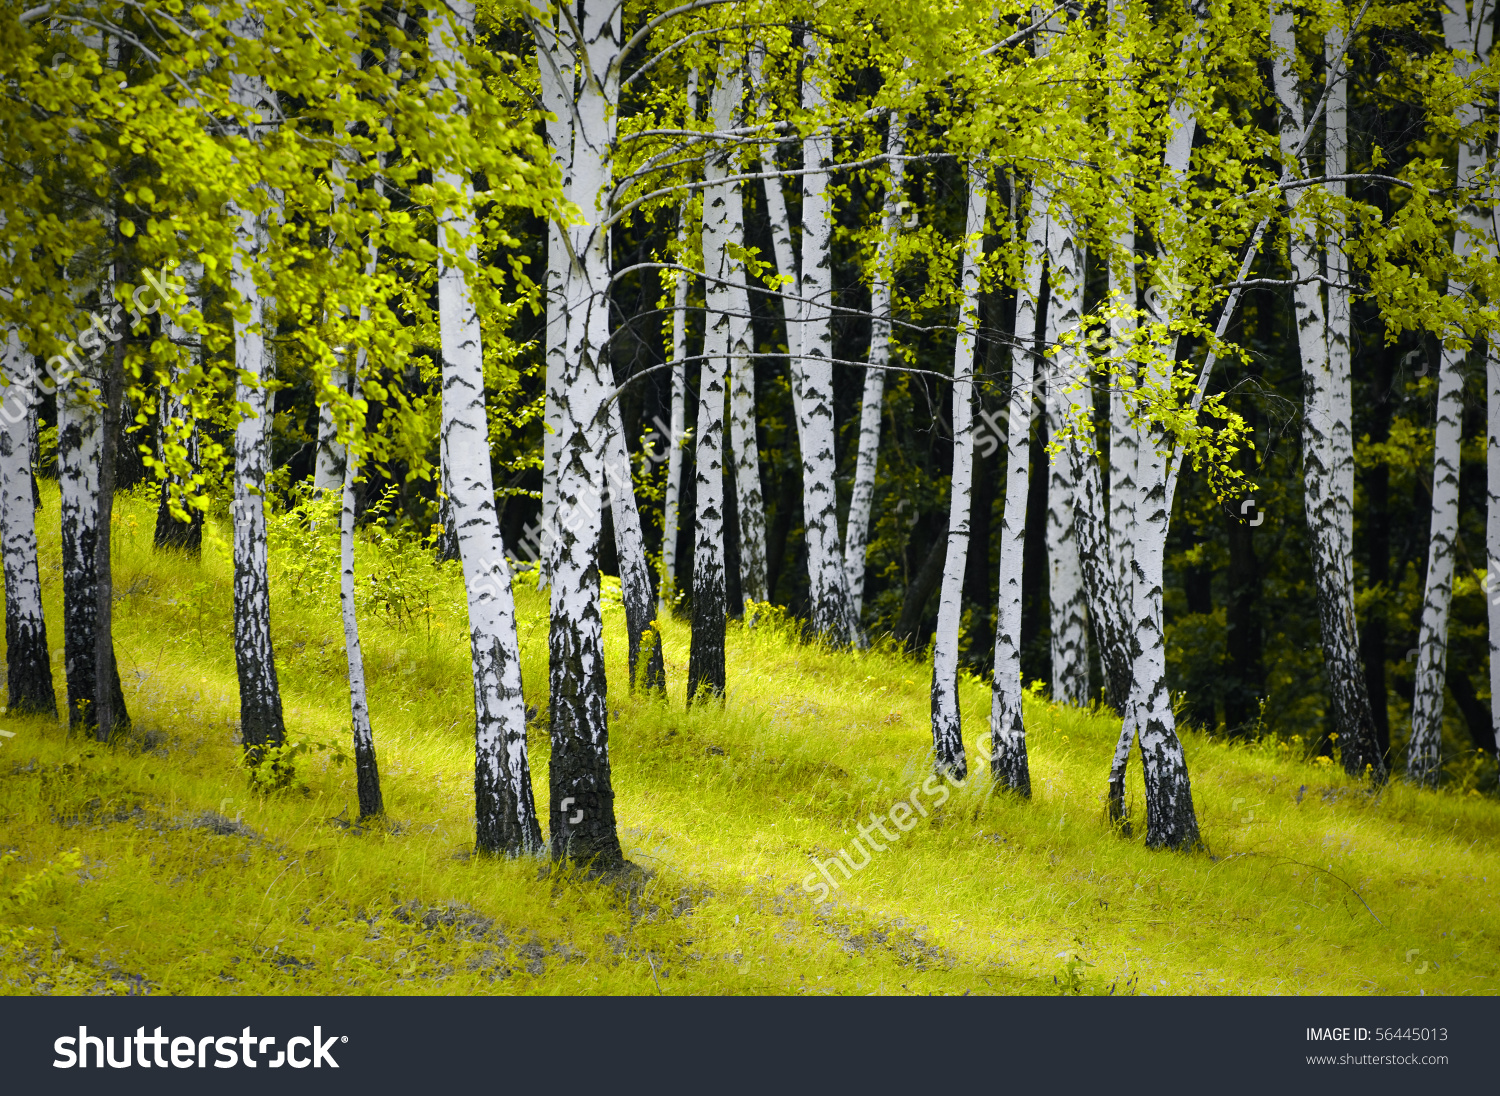 Beautiful Scene Birch Grove Stock Photo 56445013.